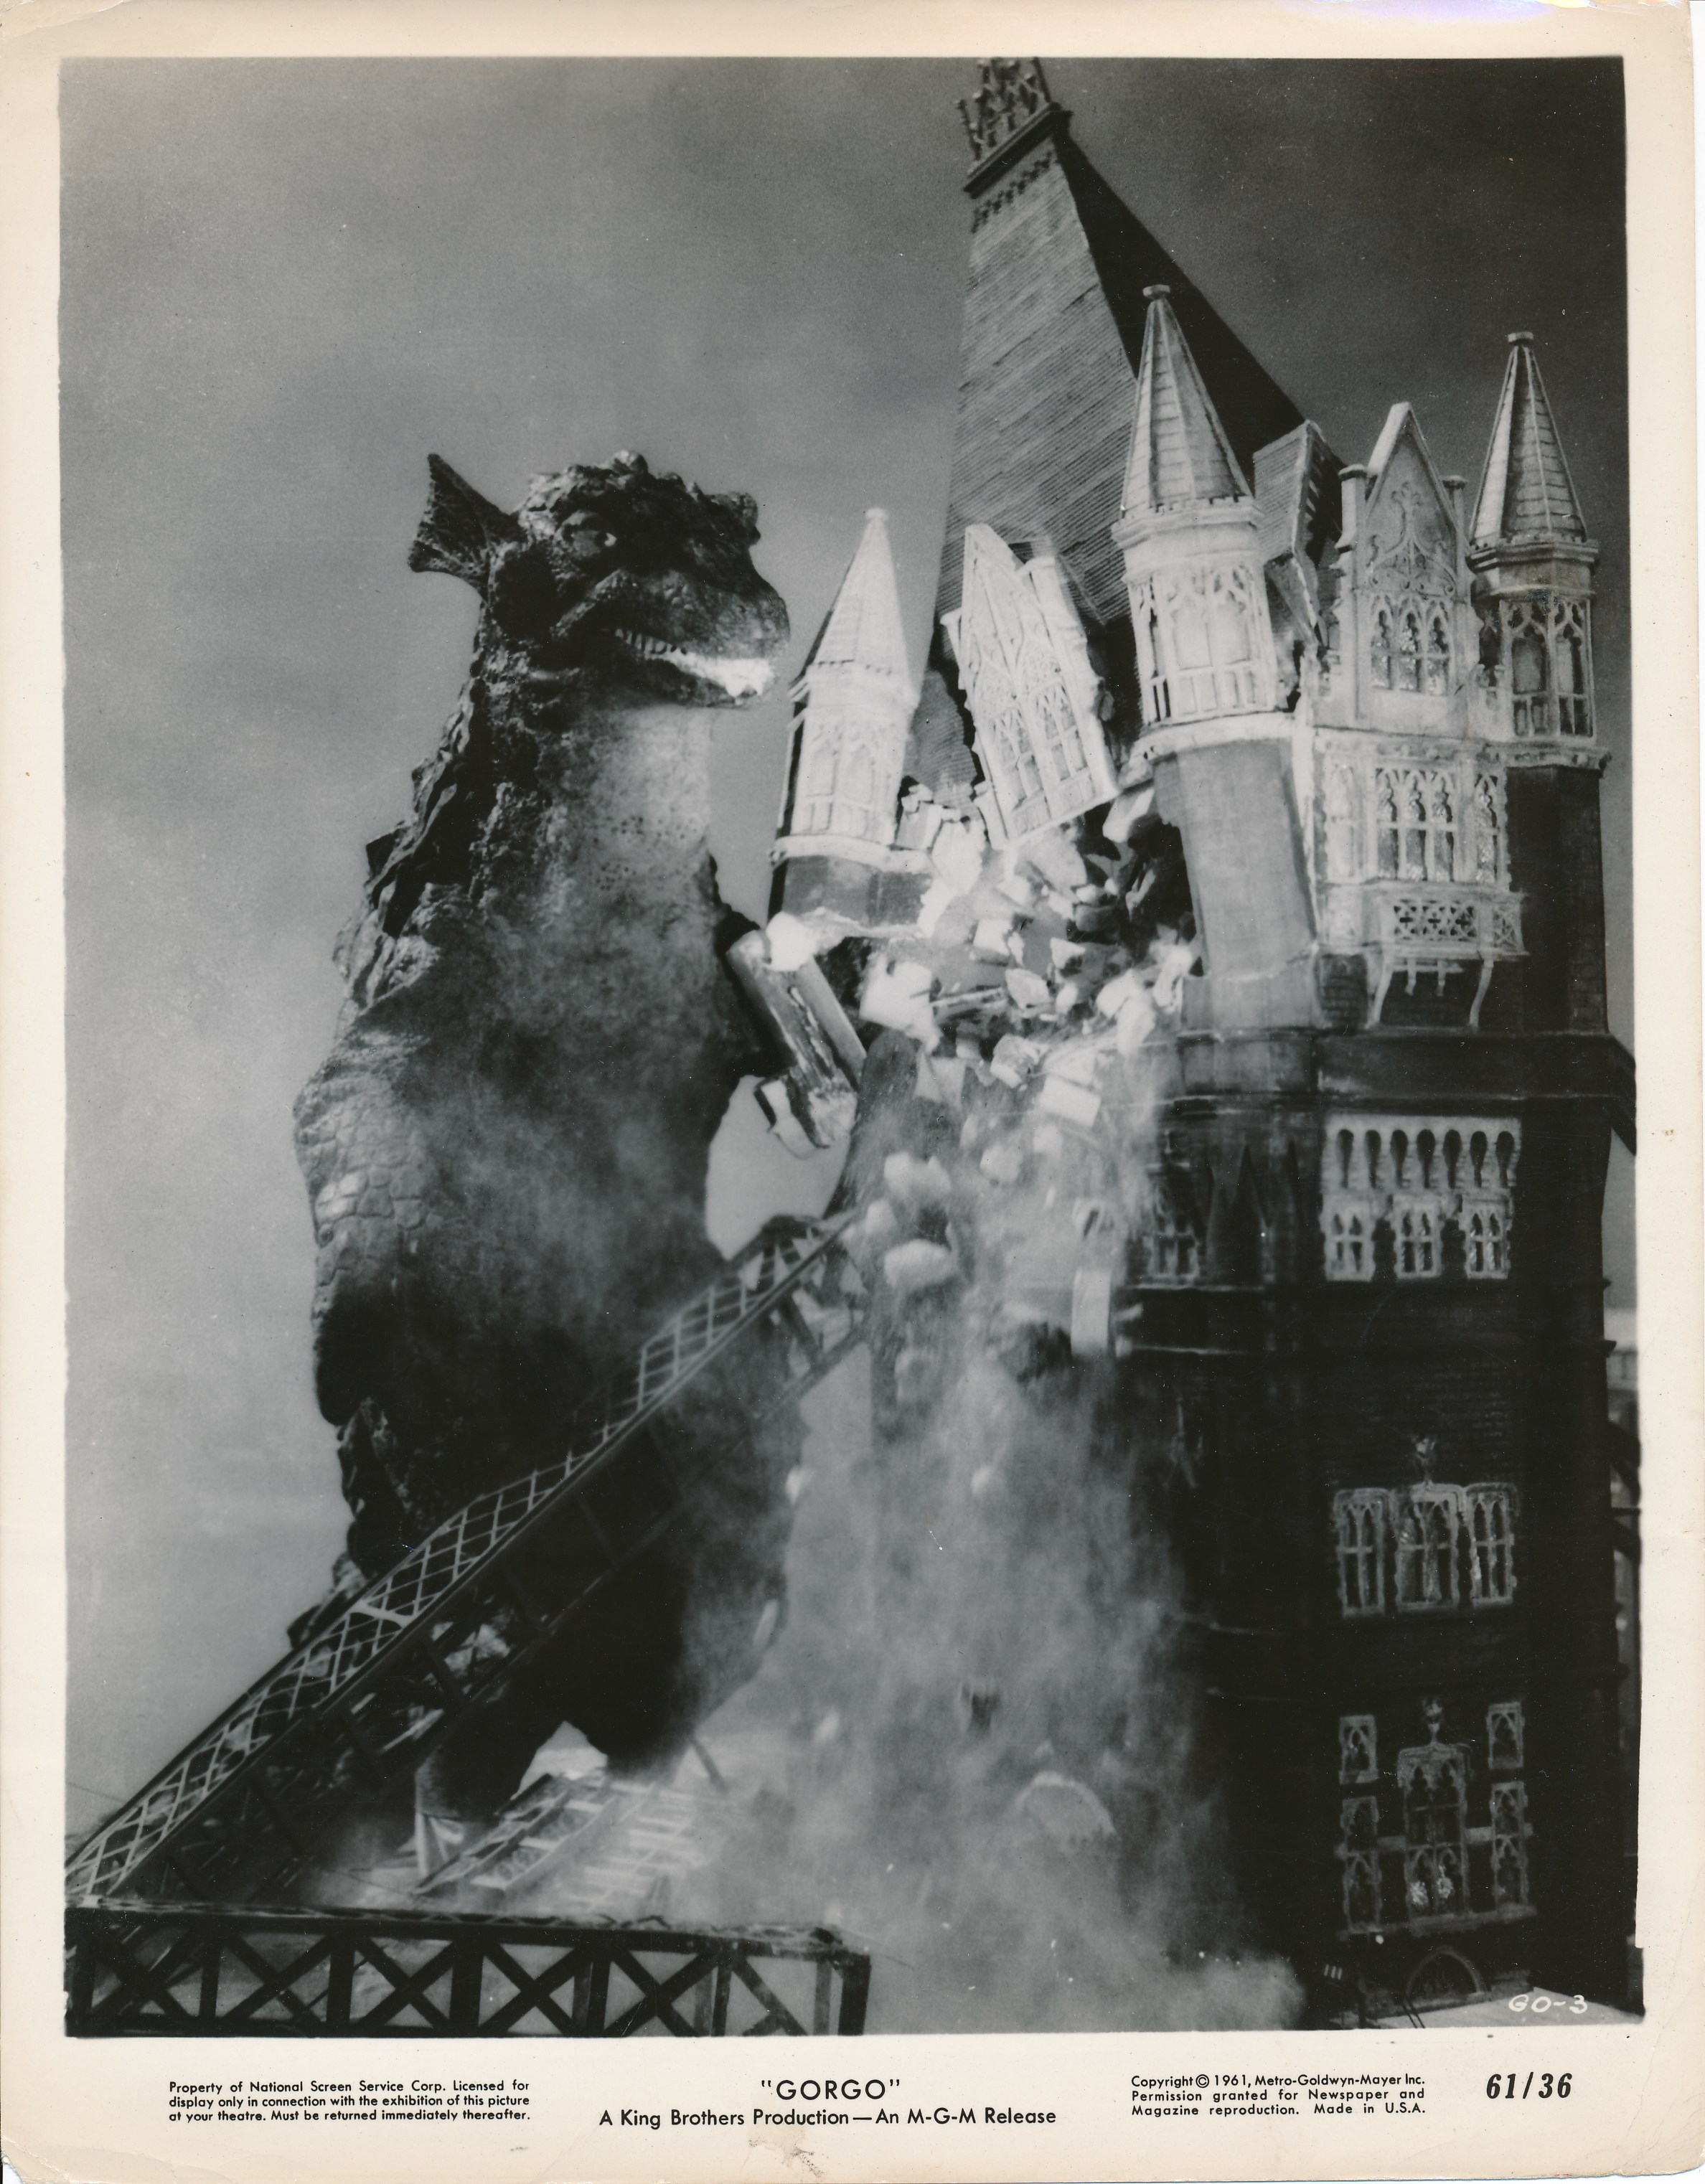 Gorgo (1961) was Godzilla's illegitimate son. Another man-in-a-suit monster, the film was credibly made and featured some interesting miniature work. As entertaining as it was, this King Brothers production was no match for the slick Toho fare that was regularly imported to the USA. (c) MGM